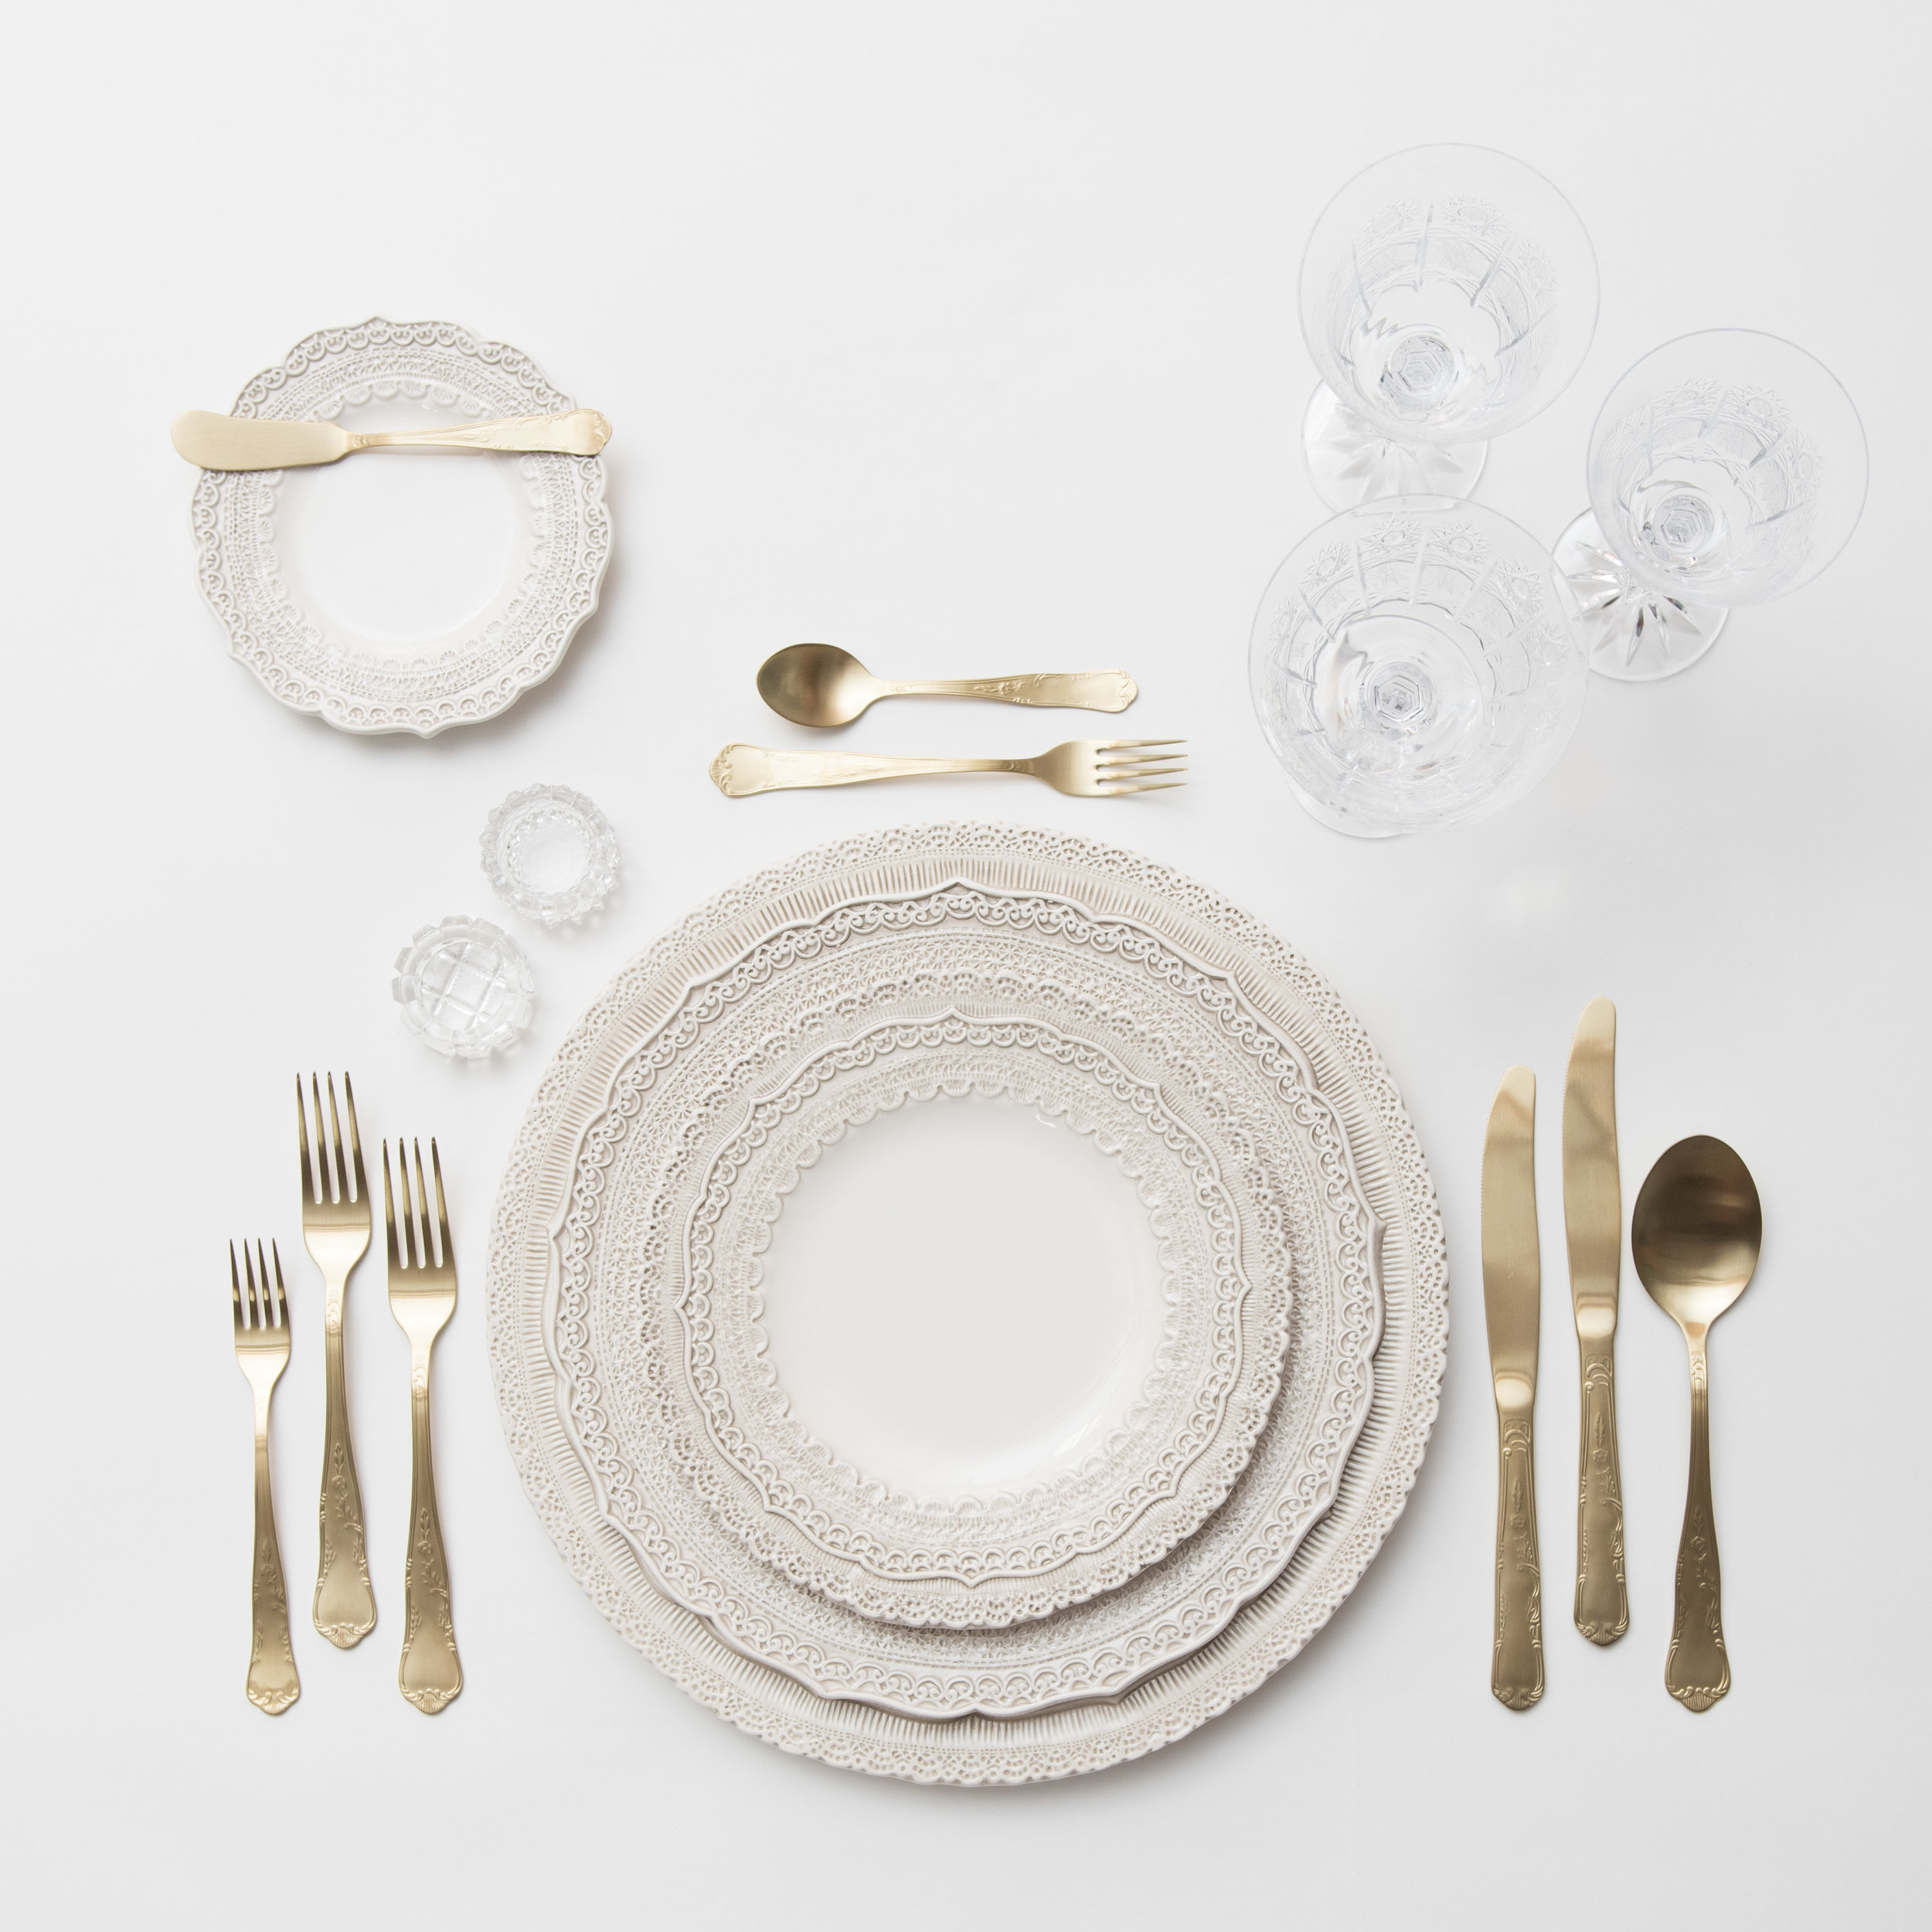 RENT:Lace Chargers/Dinnerware in White + Chateau Flatware in Matte Gold + Czech Crystal Stemware +Antique Crystal Salt Cellars